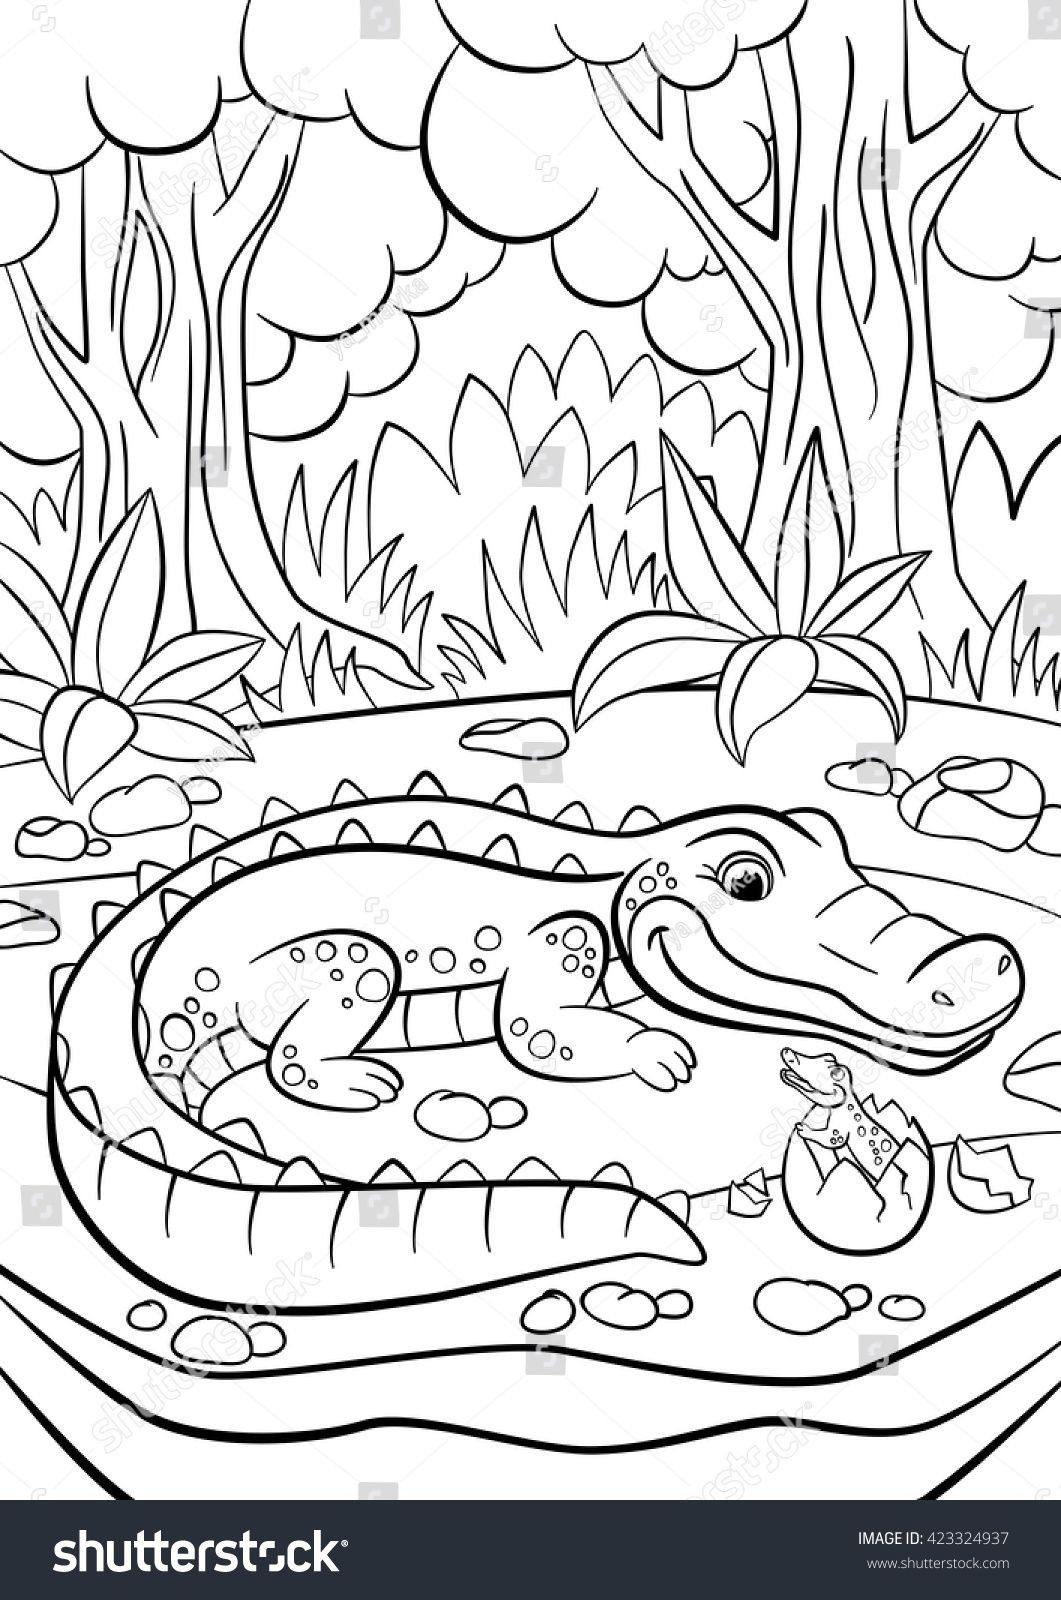 Cute Alligator Coloring Pages Coloring Pages Animals Mother Alligator Looks At Her In 2020 Animal Coloring Books Coloring Pages Animal Coloring Pages